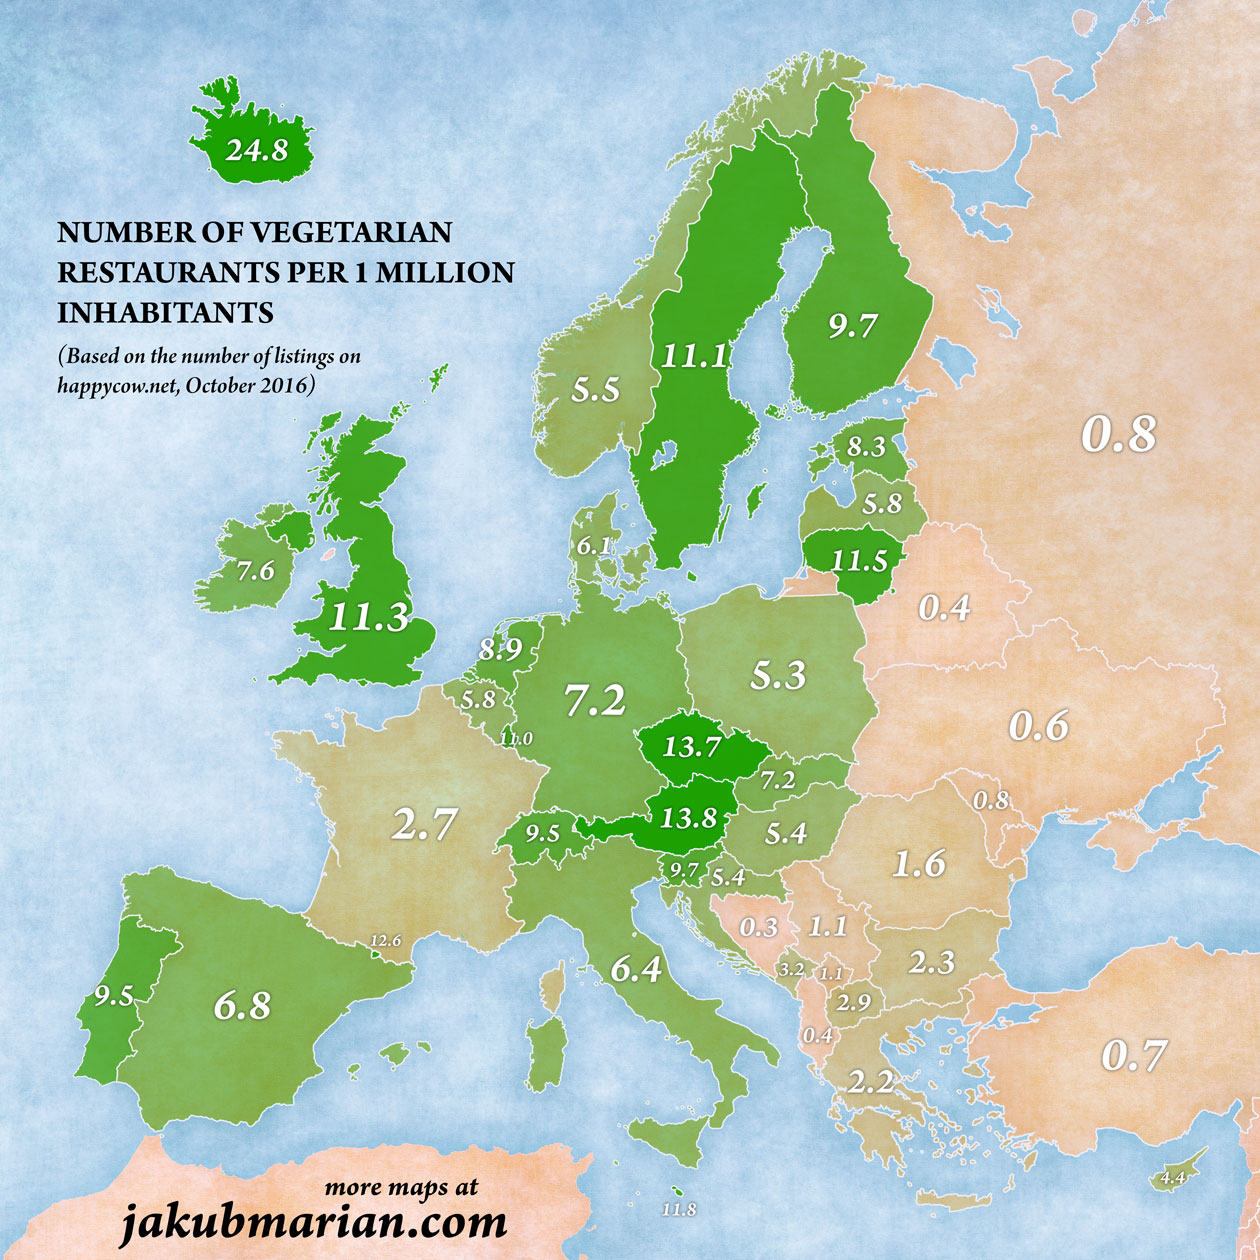 Number of vegetarian restaurants per 1,000,000 inhabitants